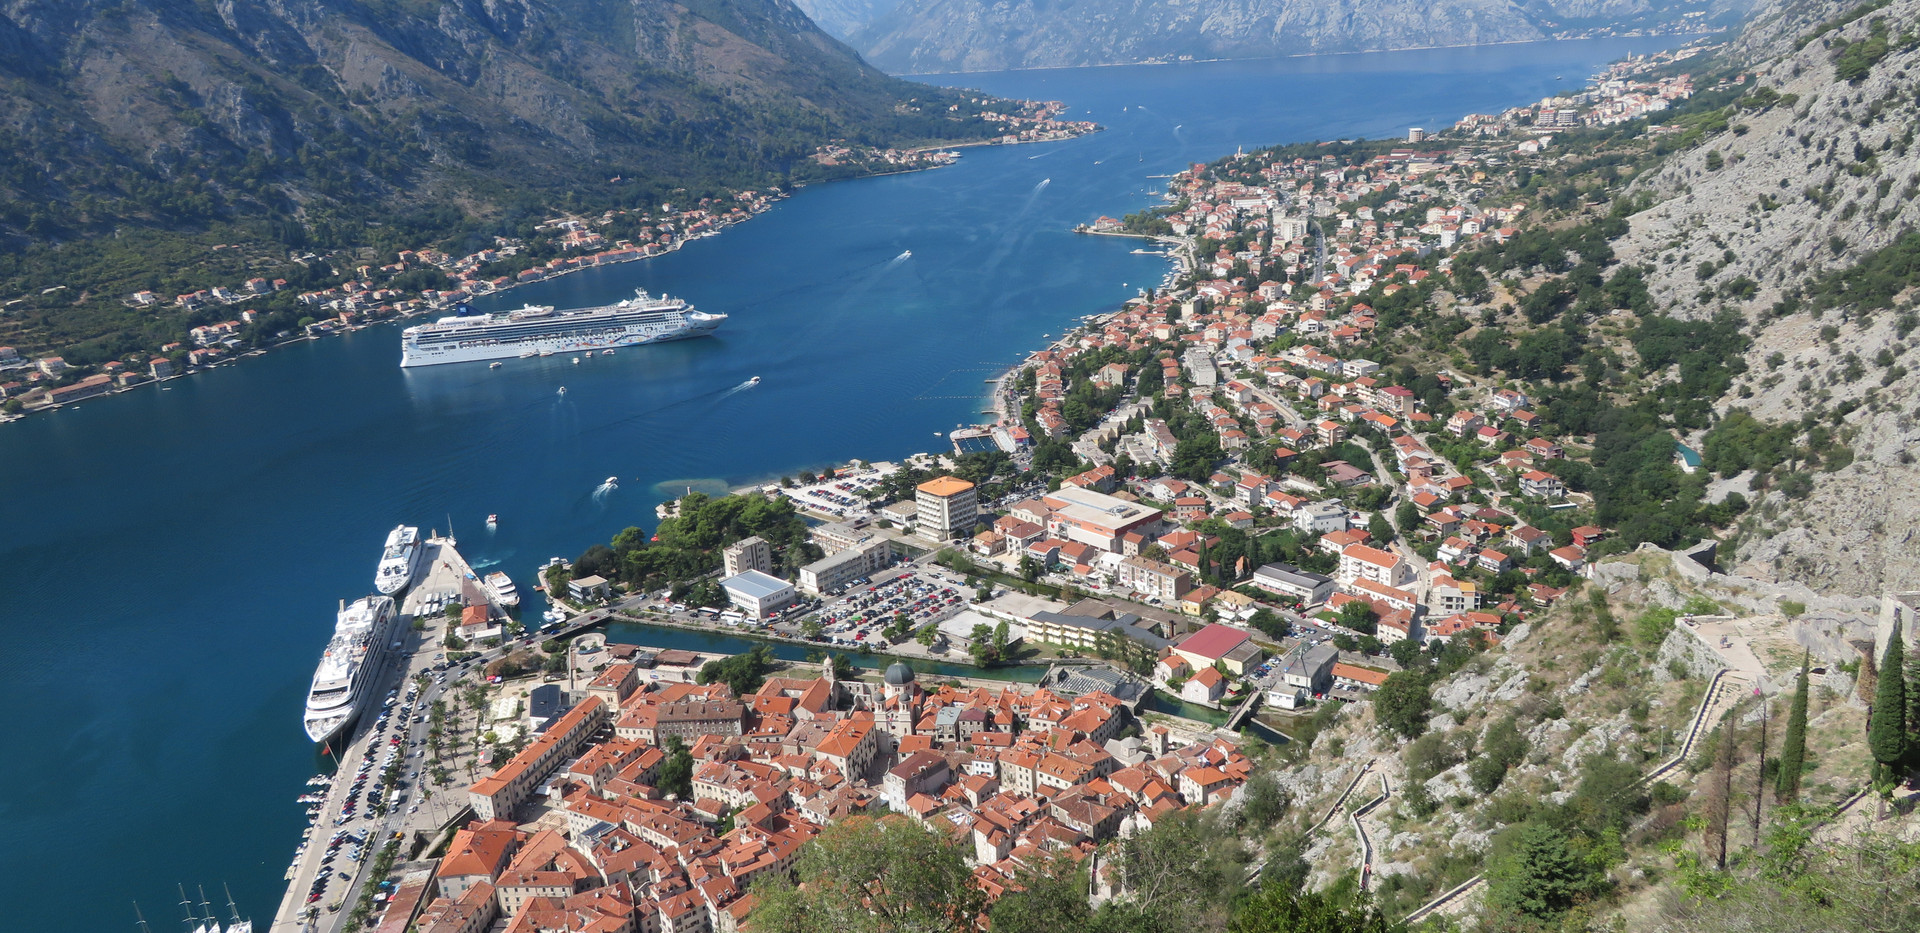 2018 Kotor, Montenegro fortress views be